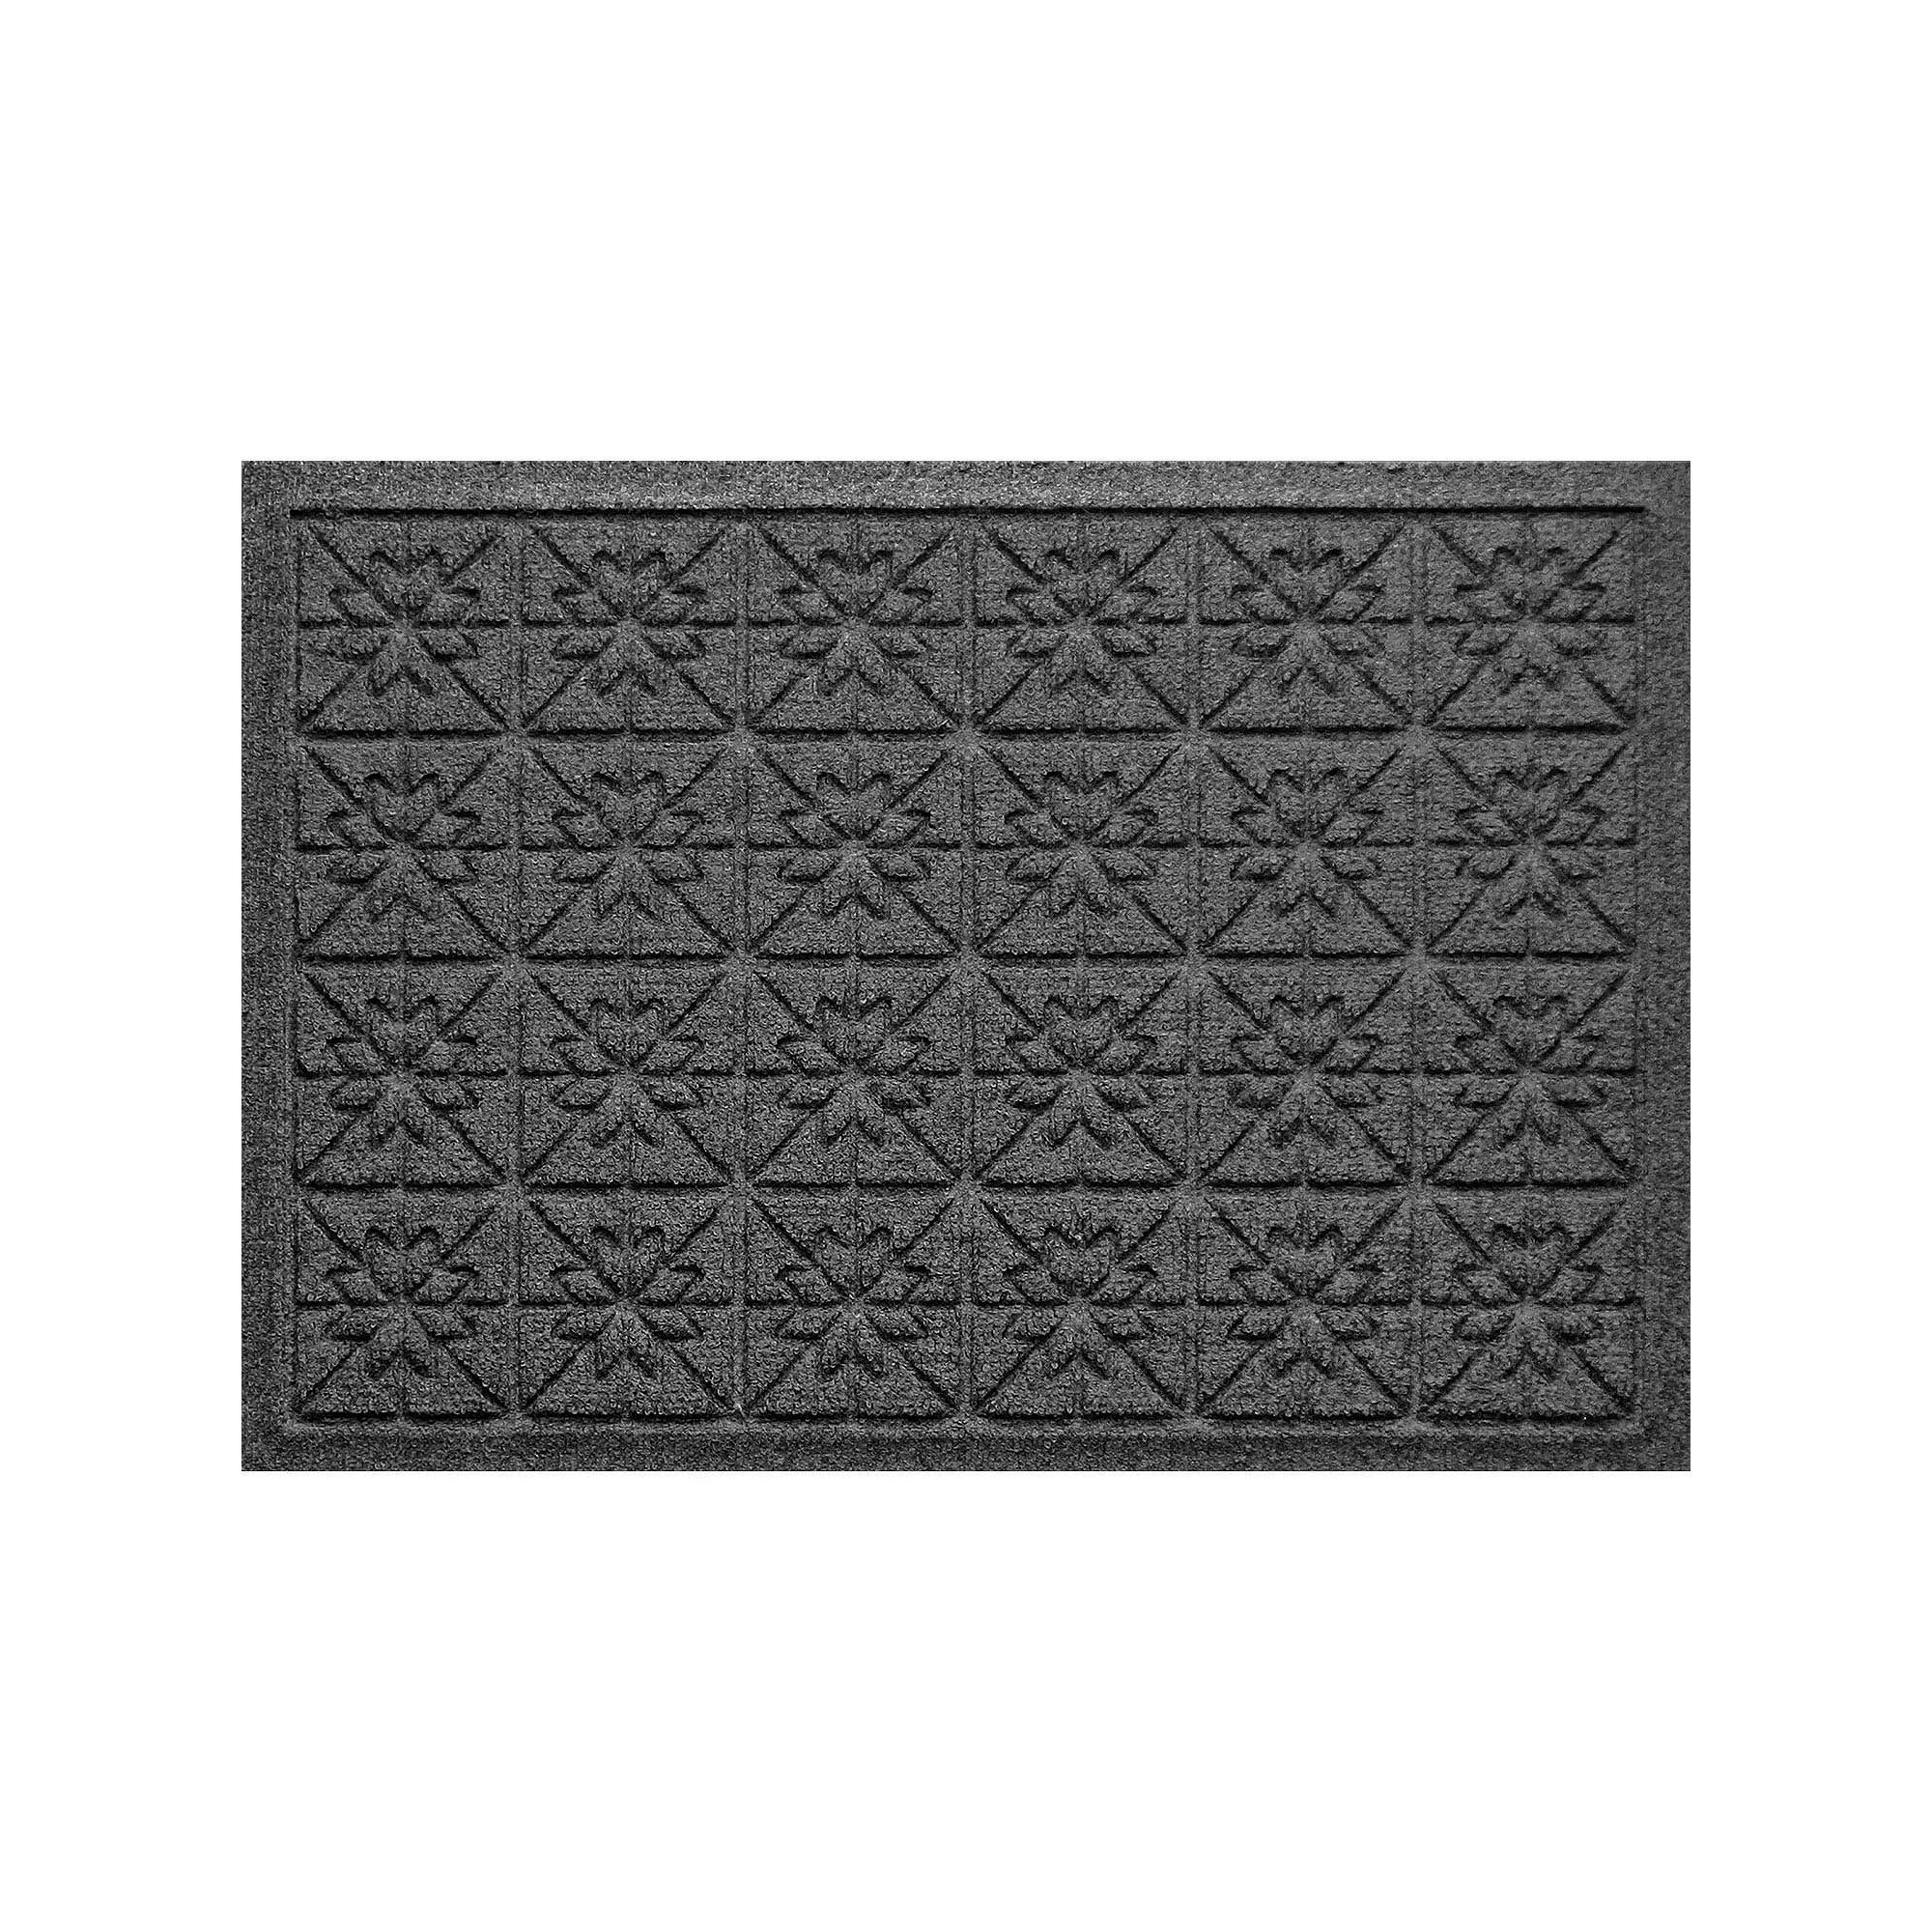 floorlinerbenefitswebgraphic pacifica floor floorliner weathertech guard measured mats laser digitalfit water chrysler for by